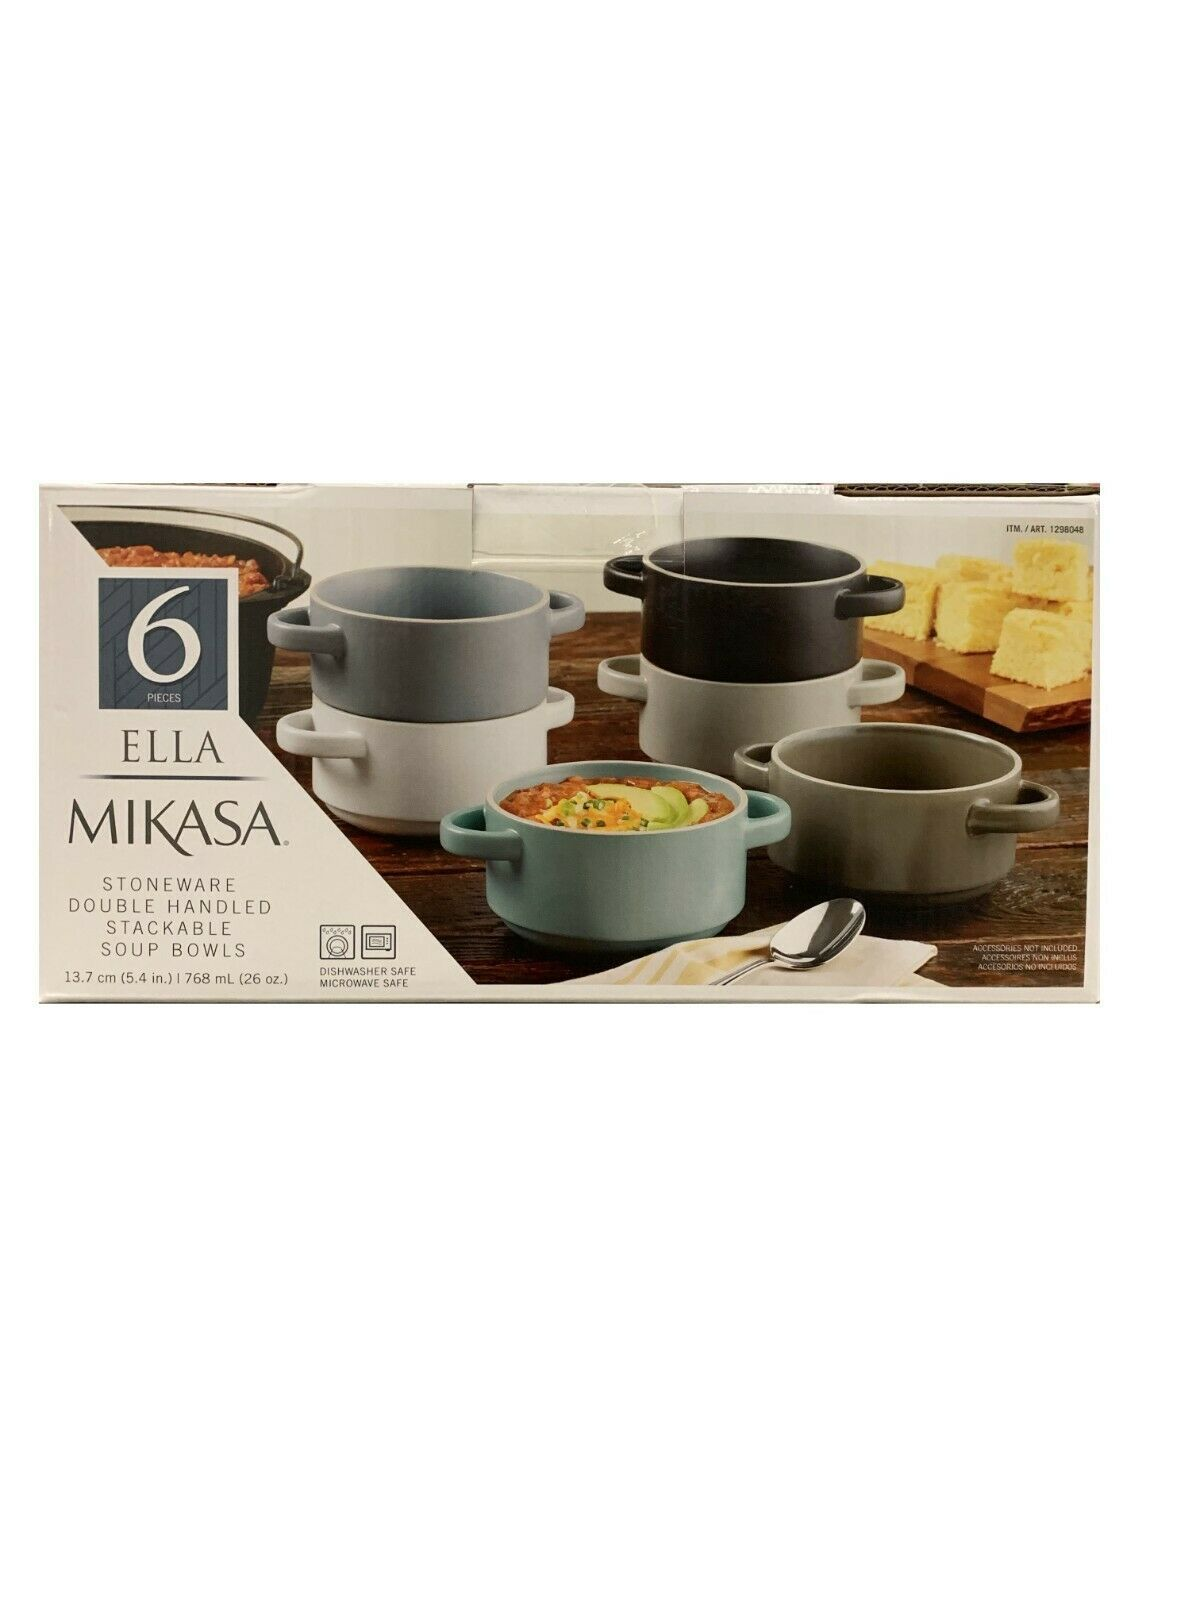 Primary image for Mikasa Ella Soup Bowl with Handles 6Pc Set Stoneware Stackable Dishwasher Safe